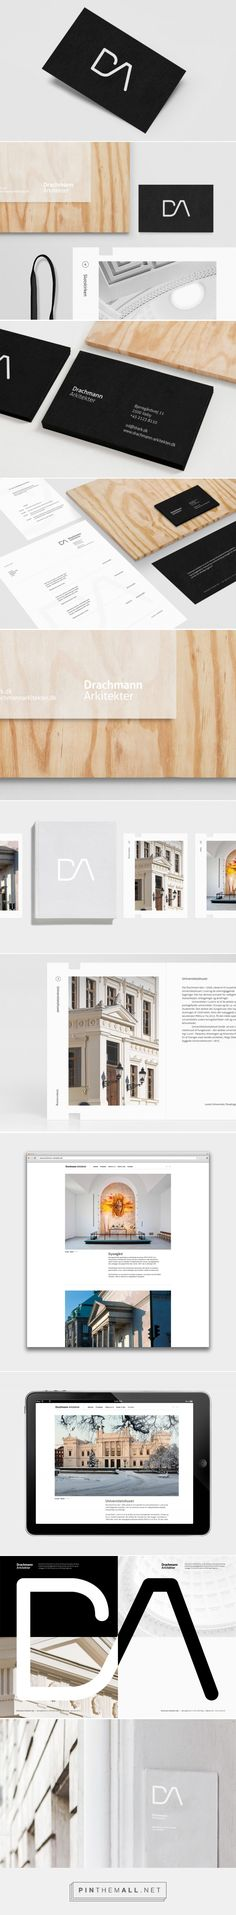 DA Architects on Behance by Daniel Siim. - created via https://pinthemall.net